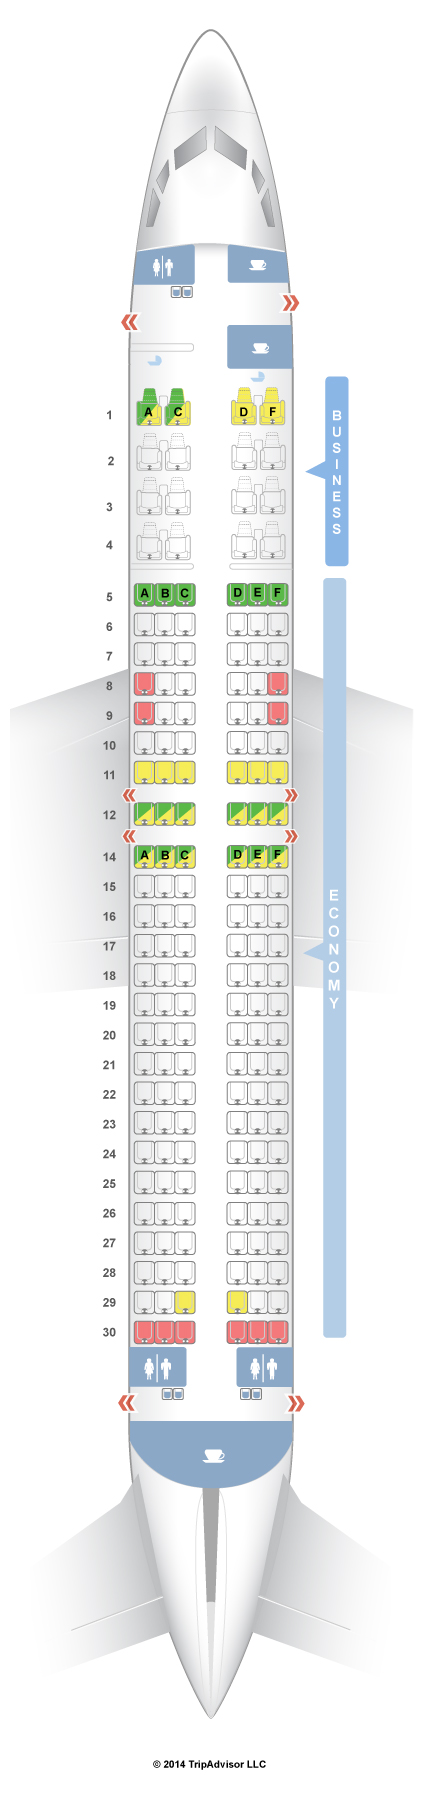 Seatguru Seat Map Malaysia Airlines Boeing 737 800 738 V1